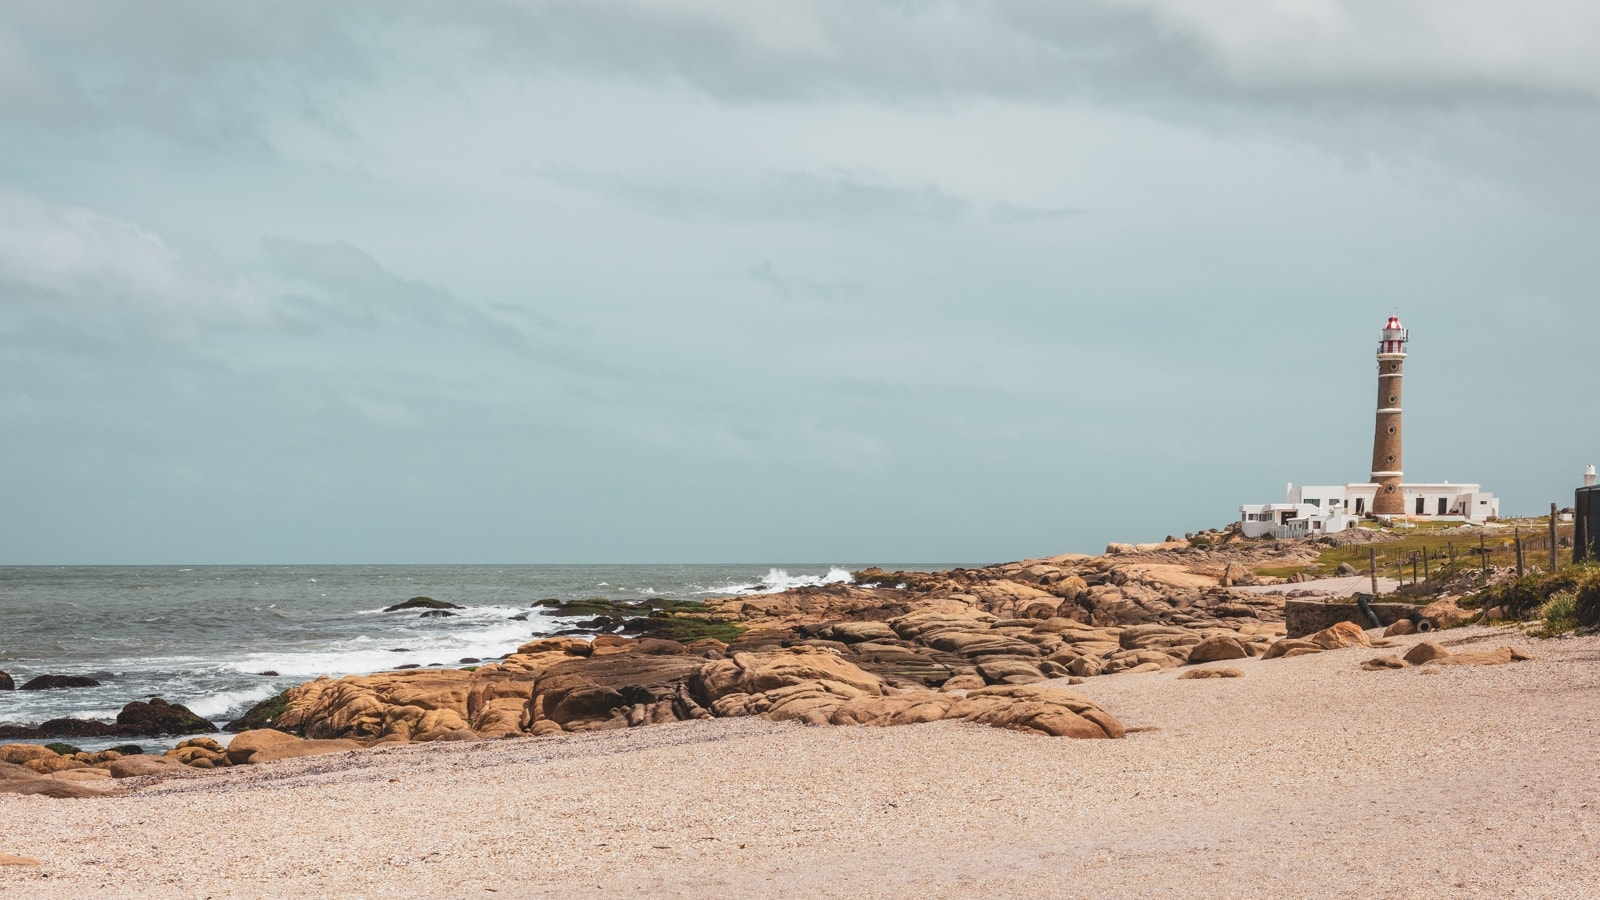 How to get to Cabo Polonio Uruguay